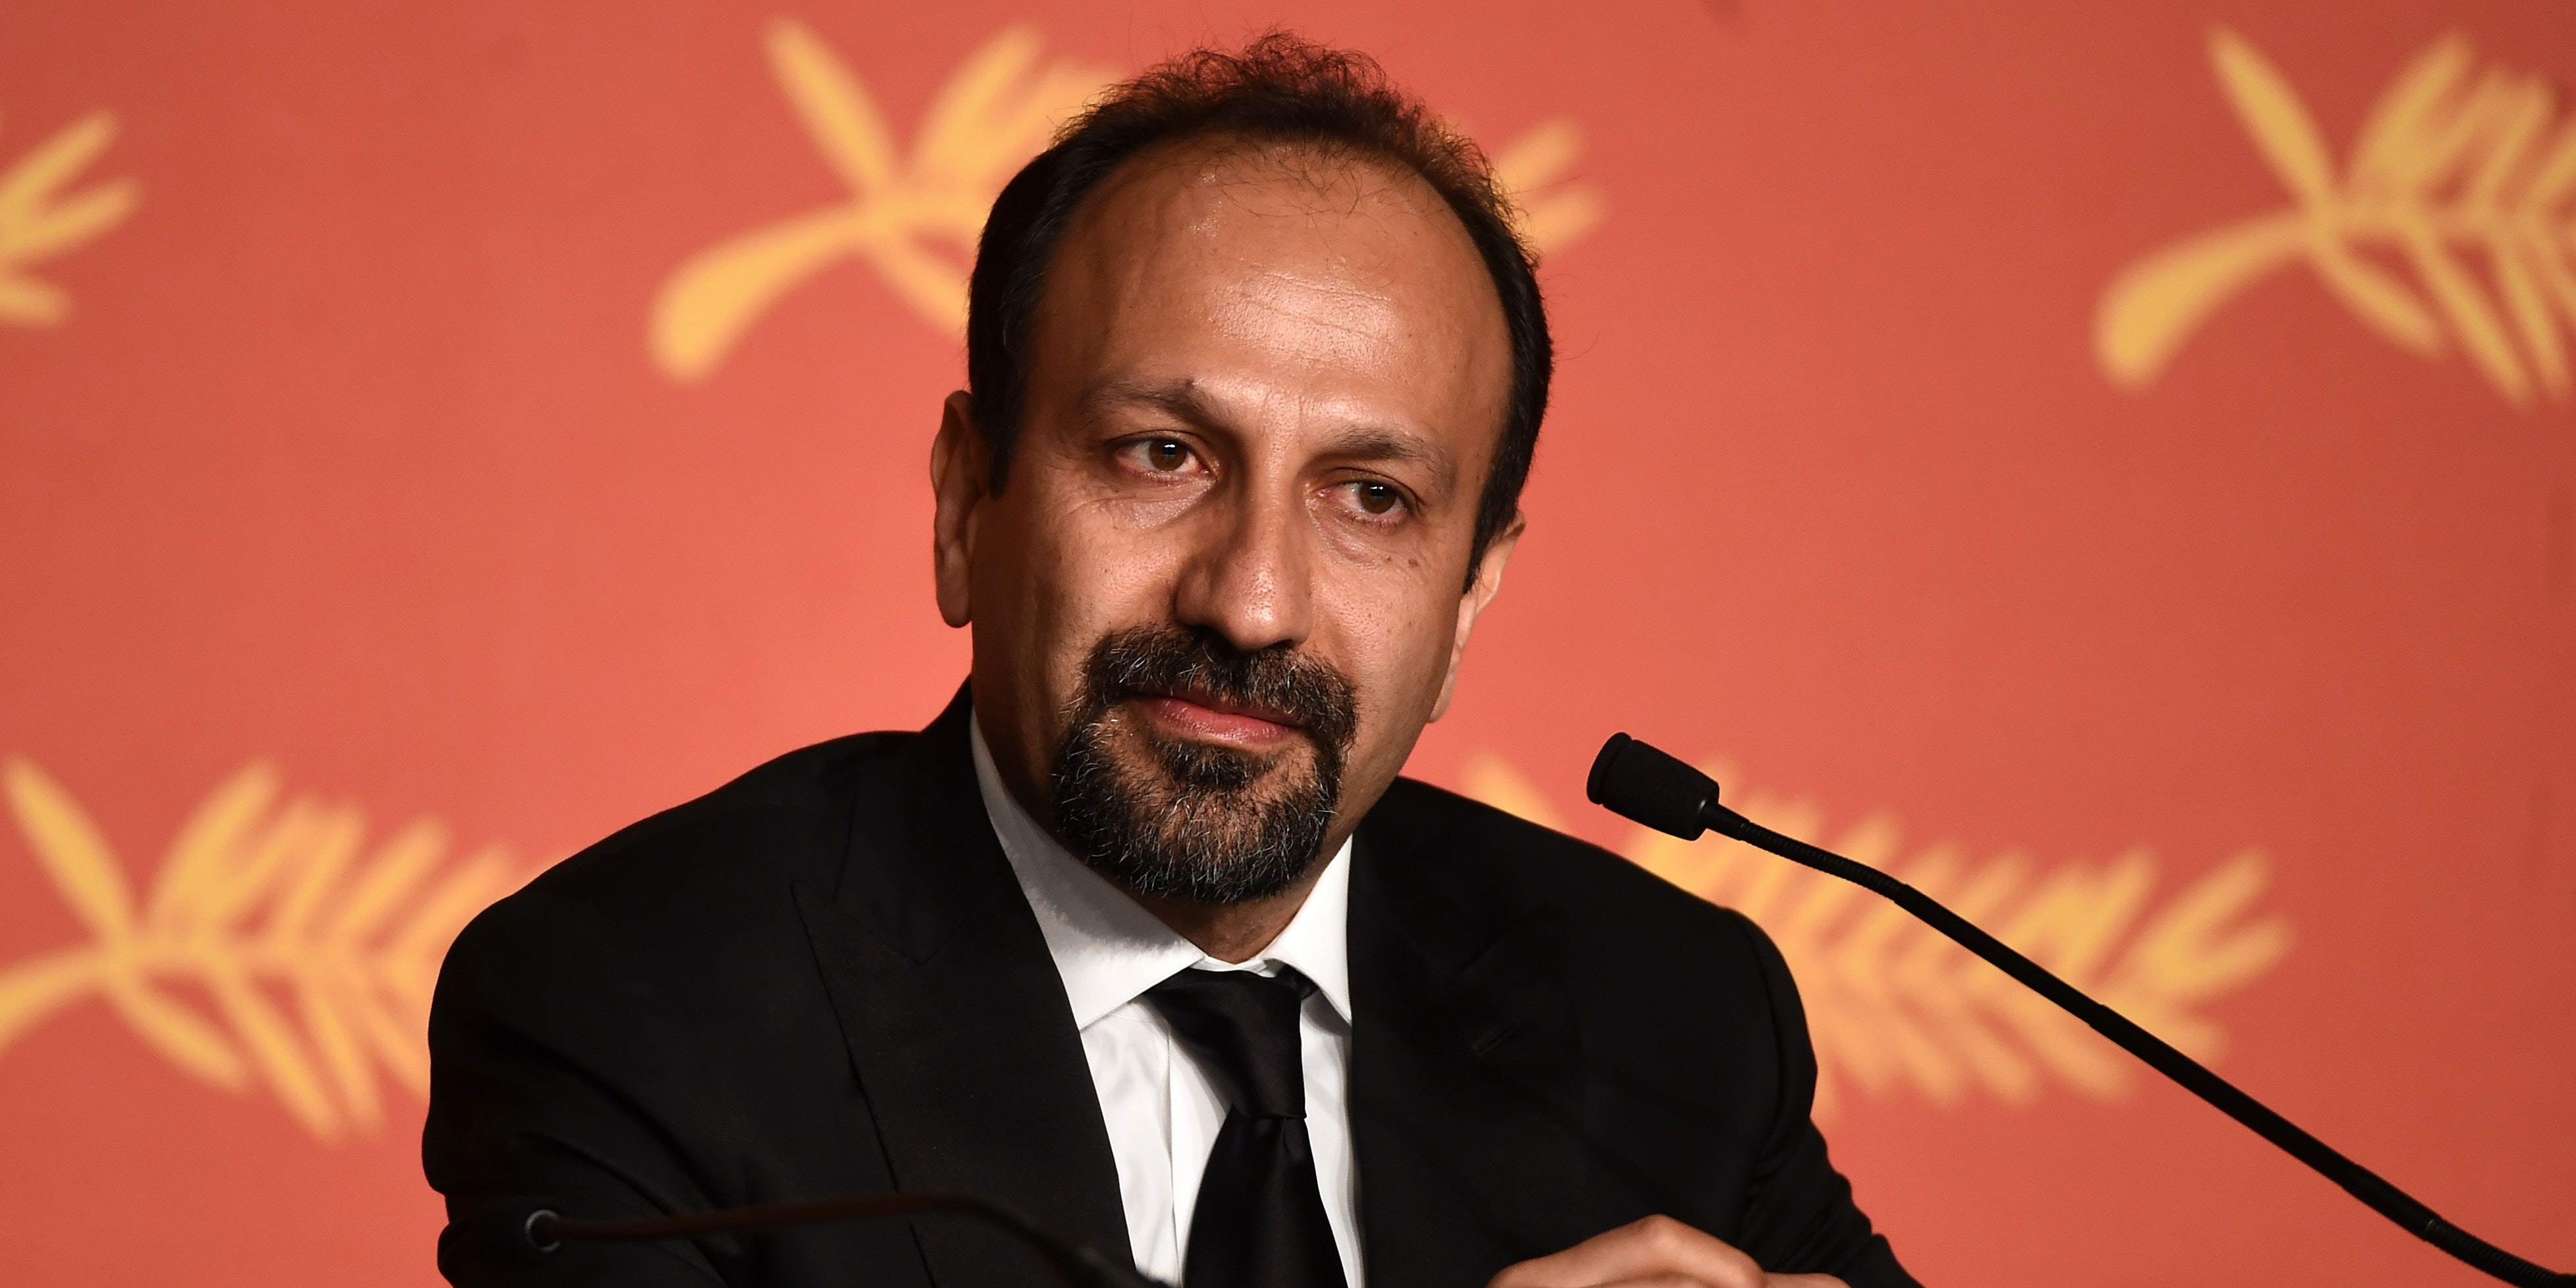 CANNES, FRANCE - MAY 22: Scriptwriter Asghar Farhadi, winner of the award for Best Script for the movie « The Salesman » , attends the Palme D'Or Winner Press Conference during the 69th annual Cannes Film Festival at the Palais des Festivals on May 22, 2016 in Cannes, France.  (Photo by Ian Gavan/Getty Images)